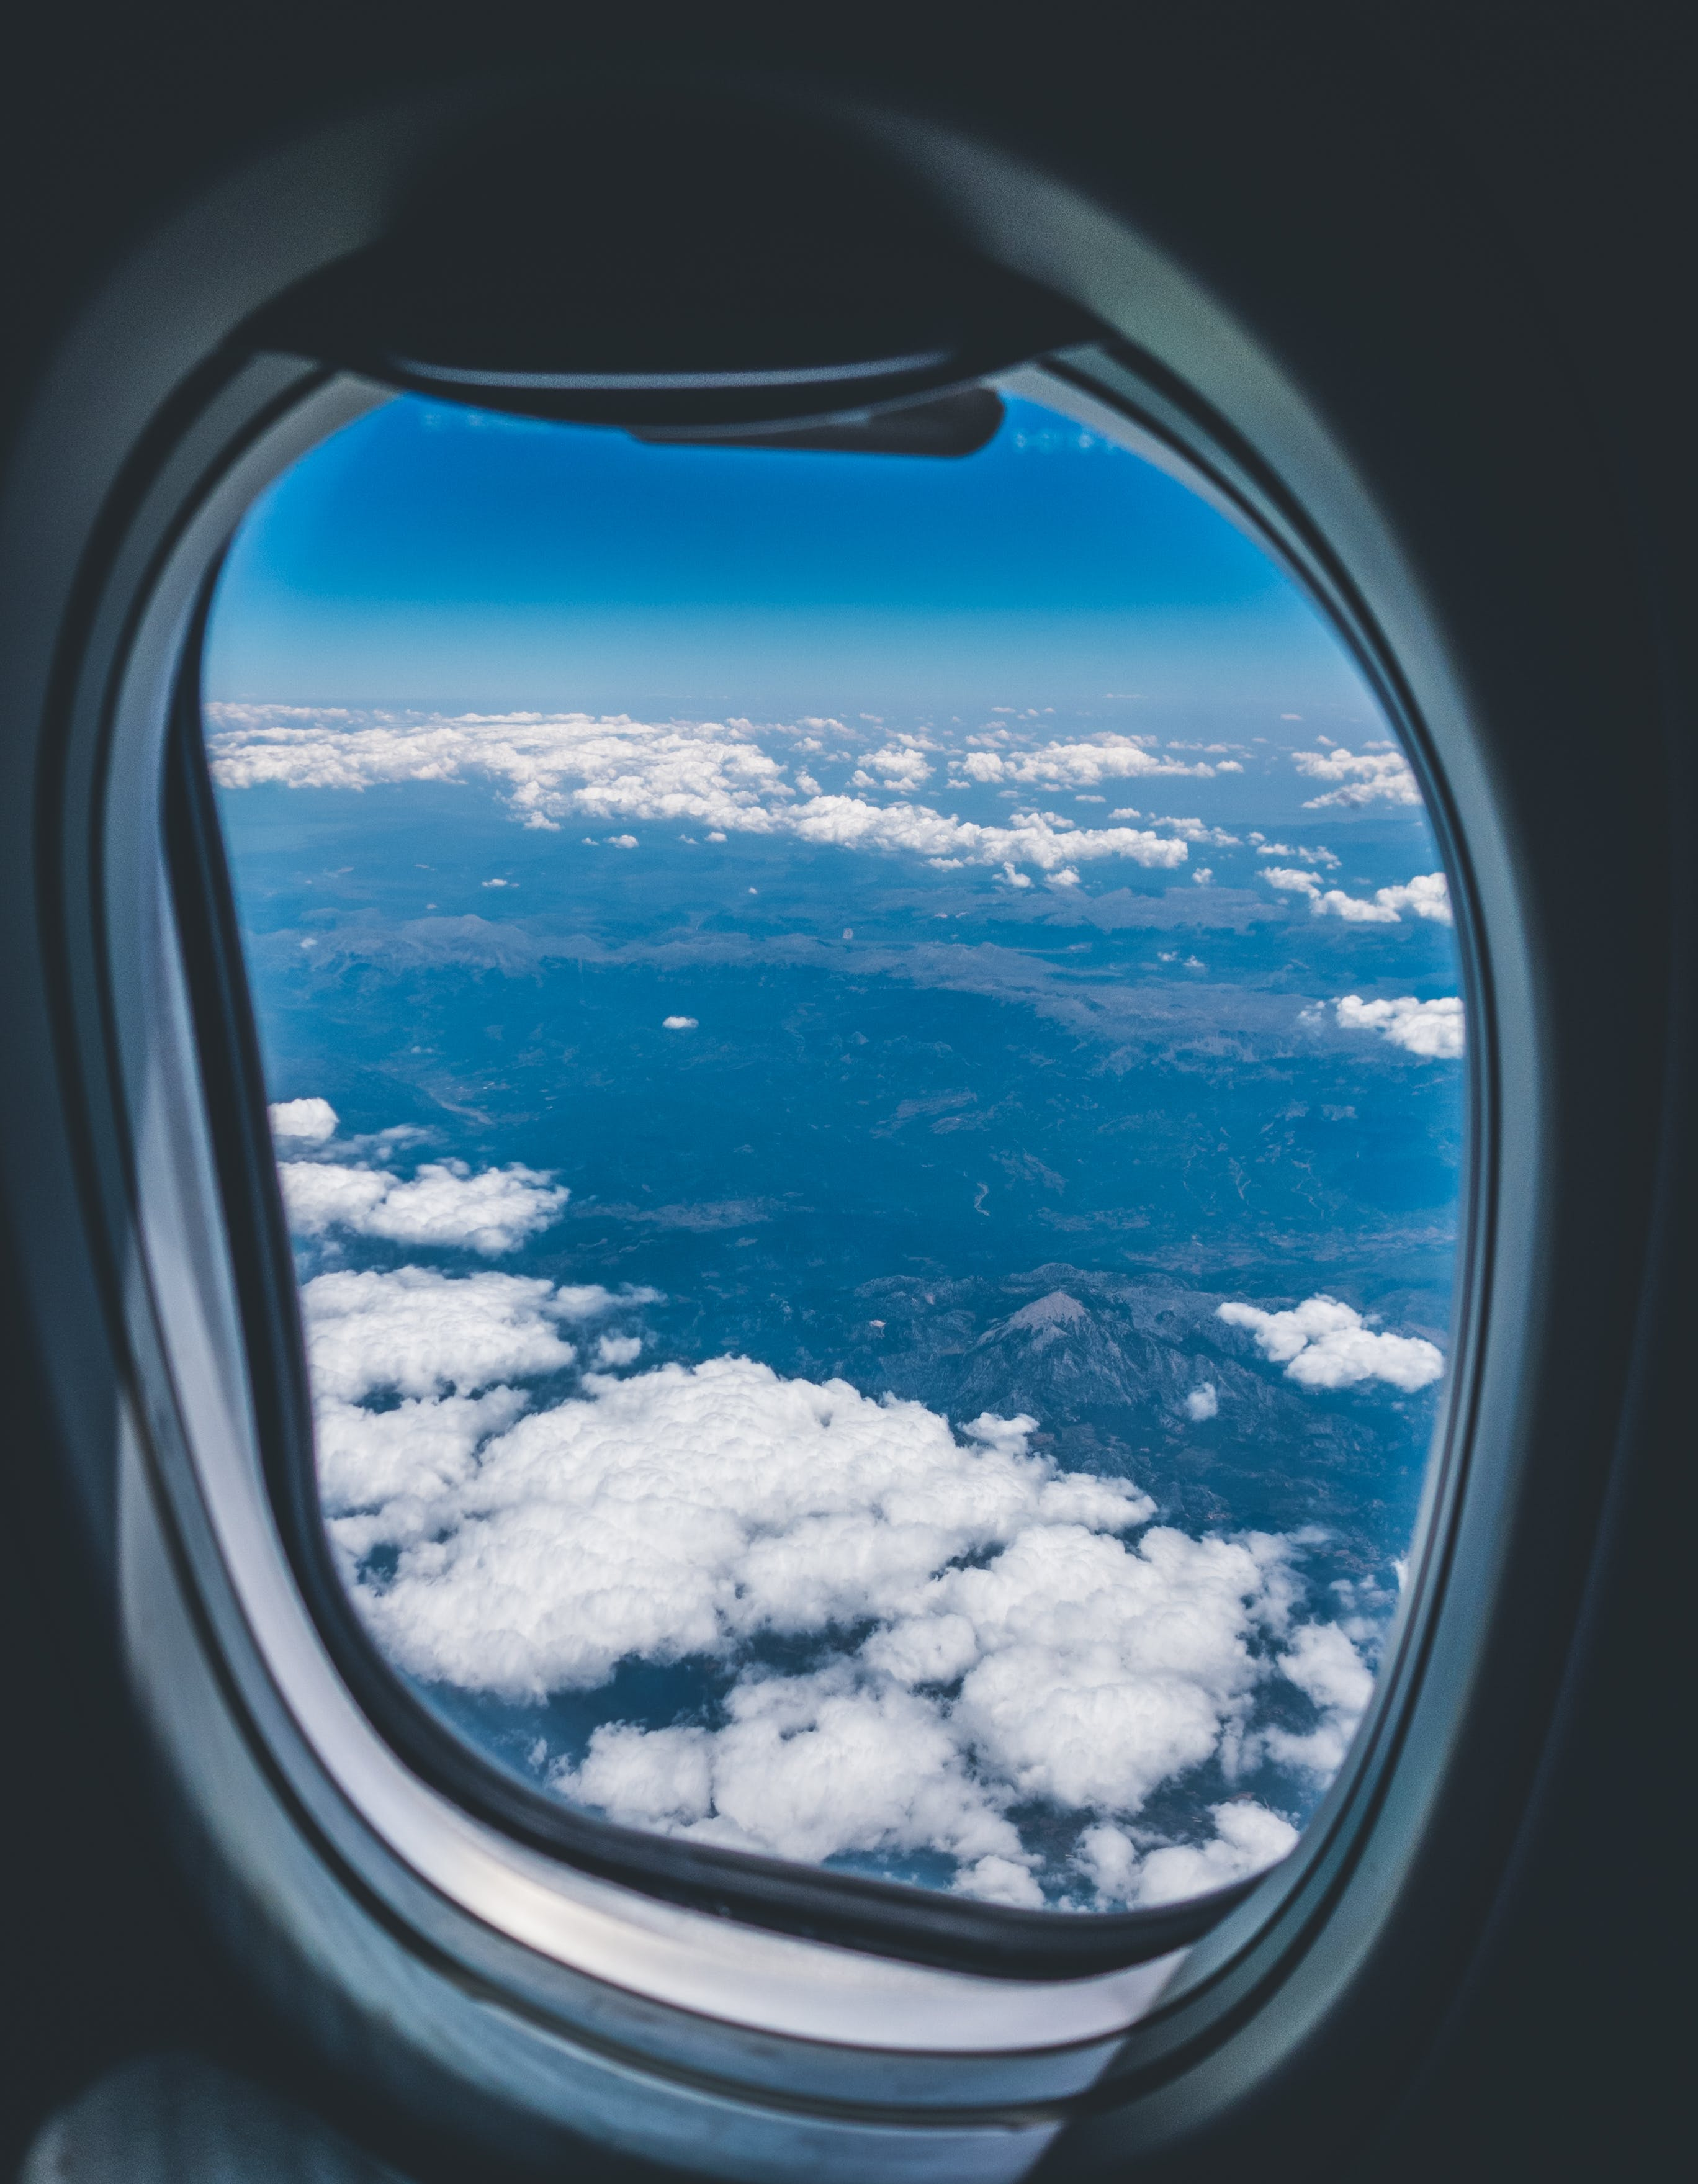 Airplane Window View of White Clouds over Mountain